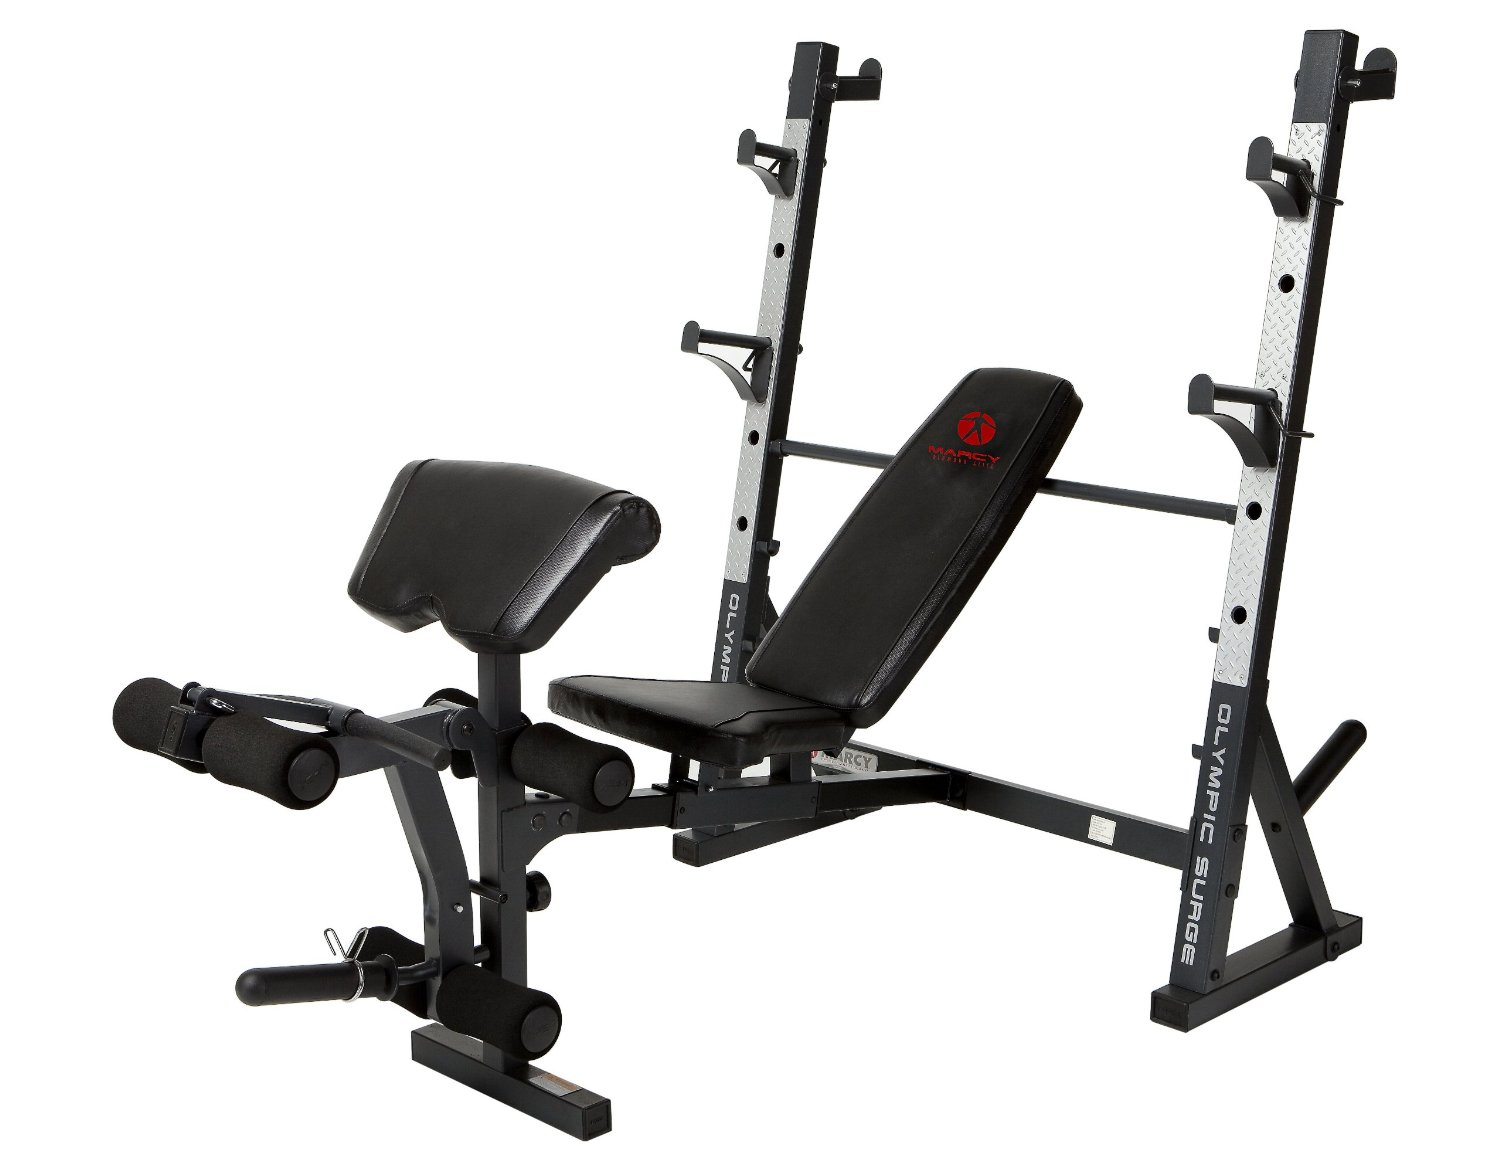 Marcy Diamond Olympic Surge Bench , Marcy Diamond MD 857 Olympic Surge Bench Review